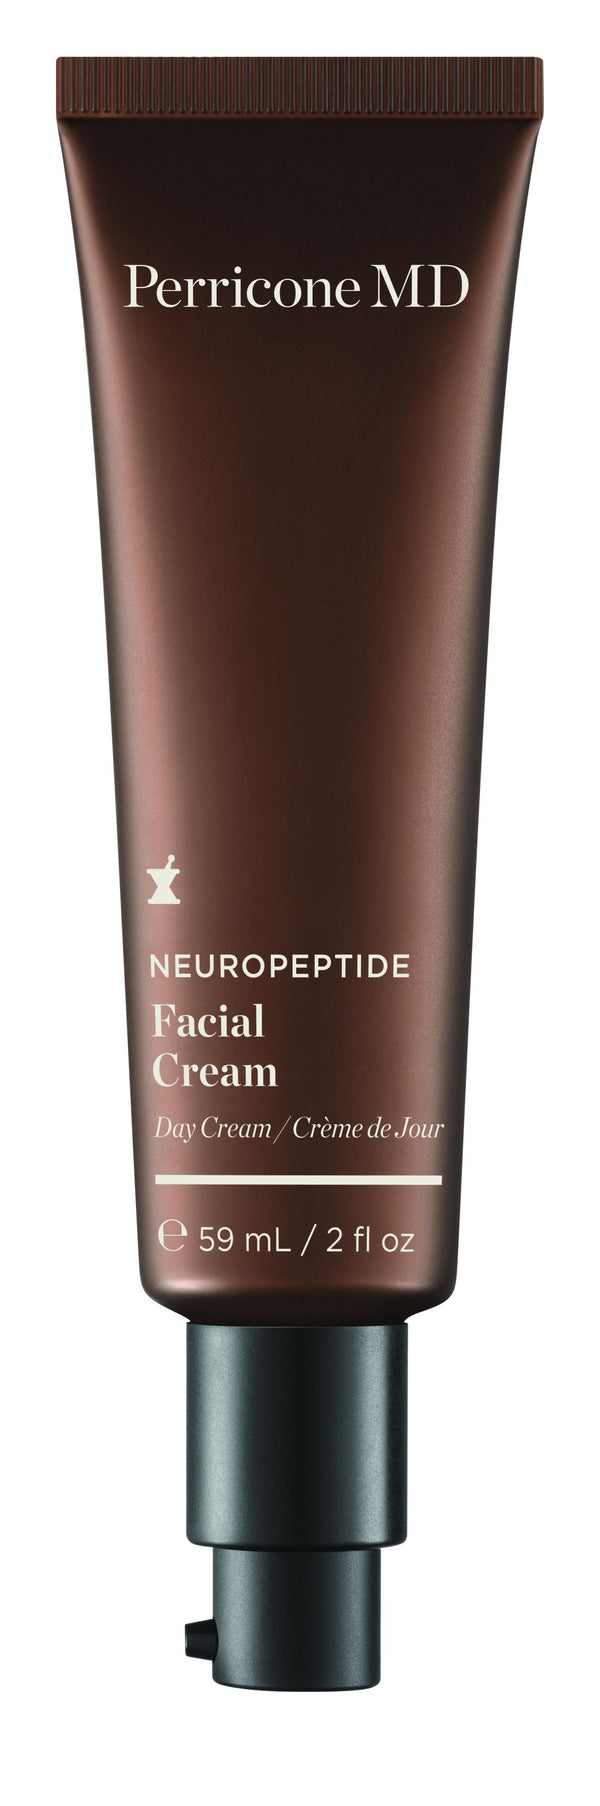 Neuropeptide Facial Cream